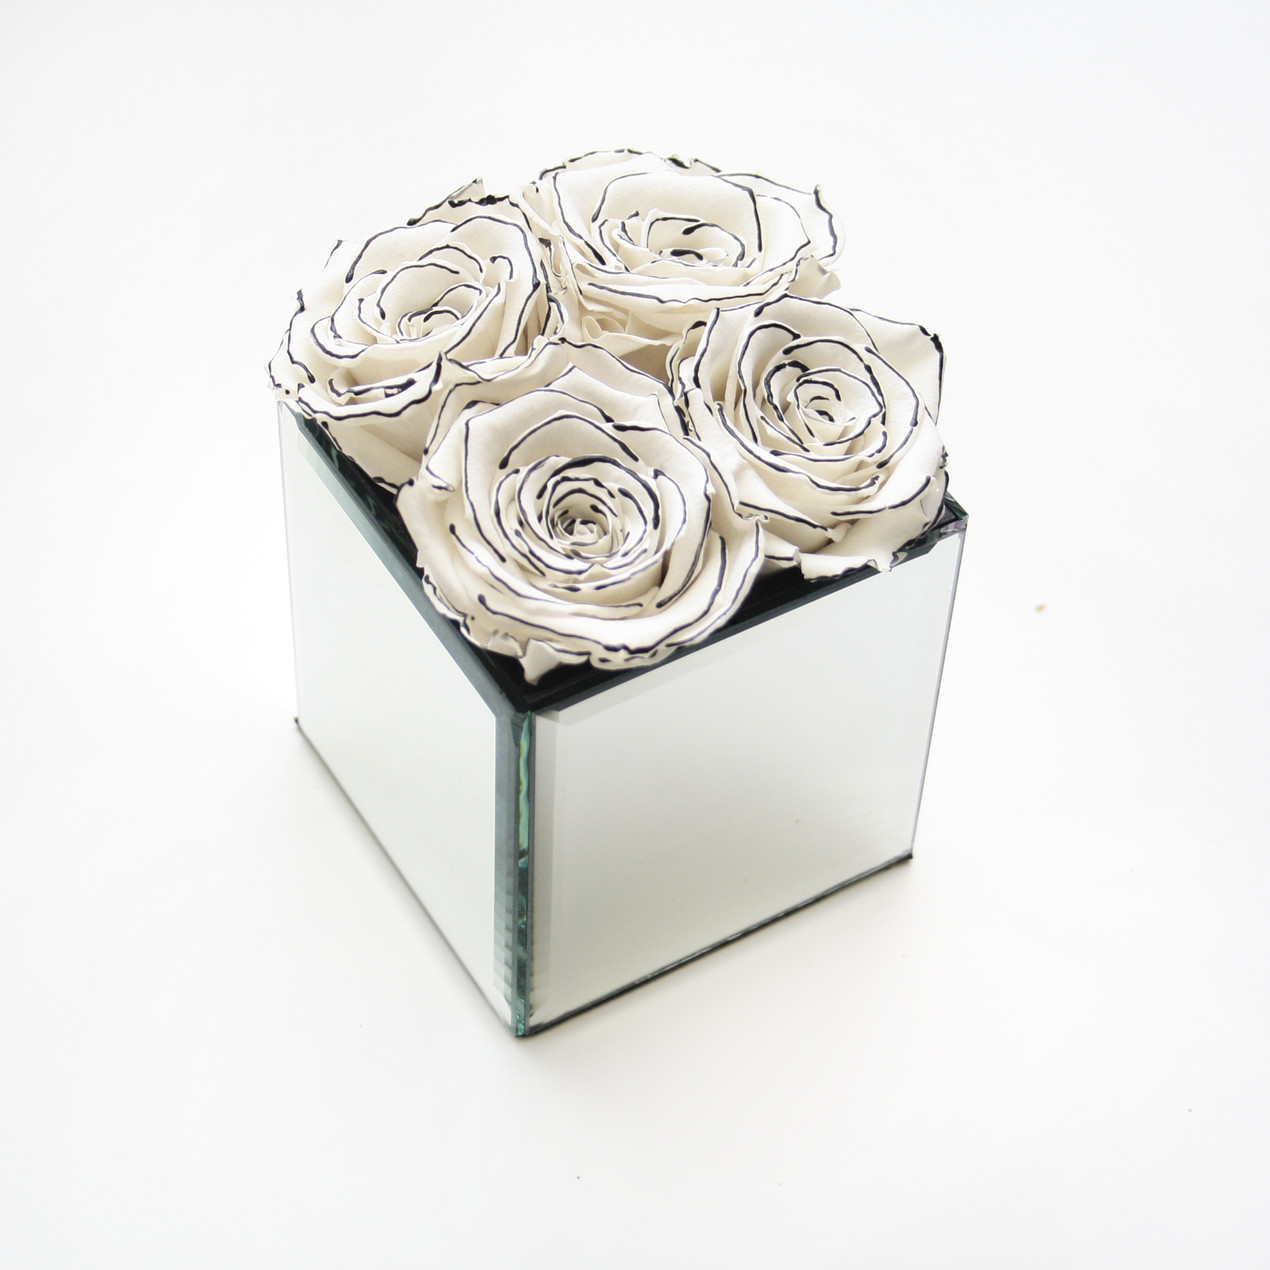 preserved roses year long roses forever rose mirrored cube stye chic interior classy home classy interior classy bedroom sparkle bedroom bedroom inspo home design home interior home inspo bedroom inspo house is a home home is where the heart is